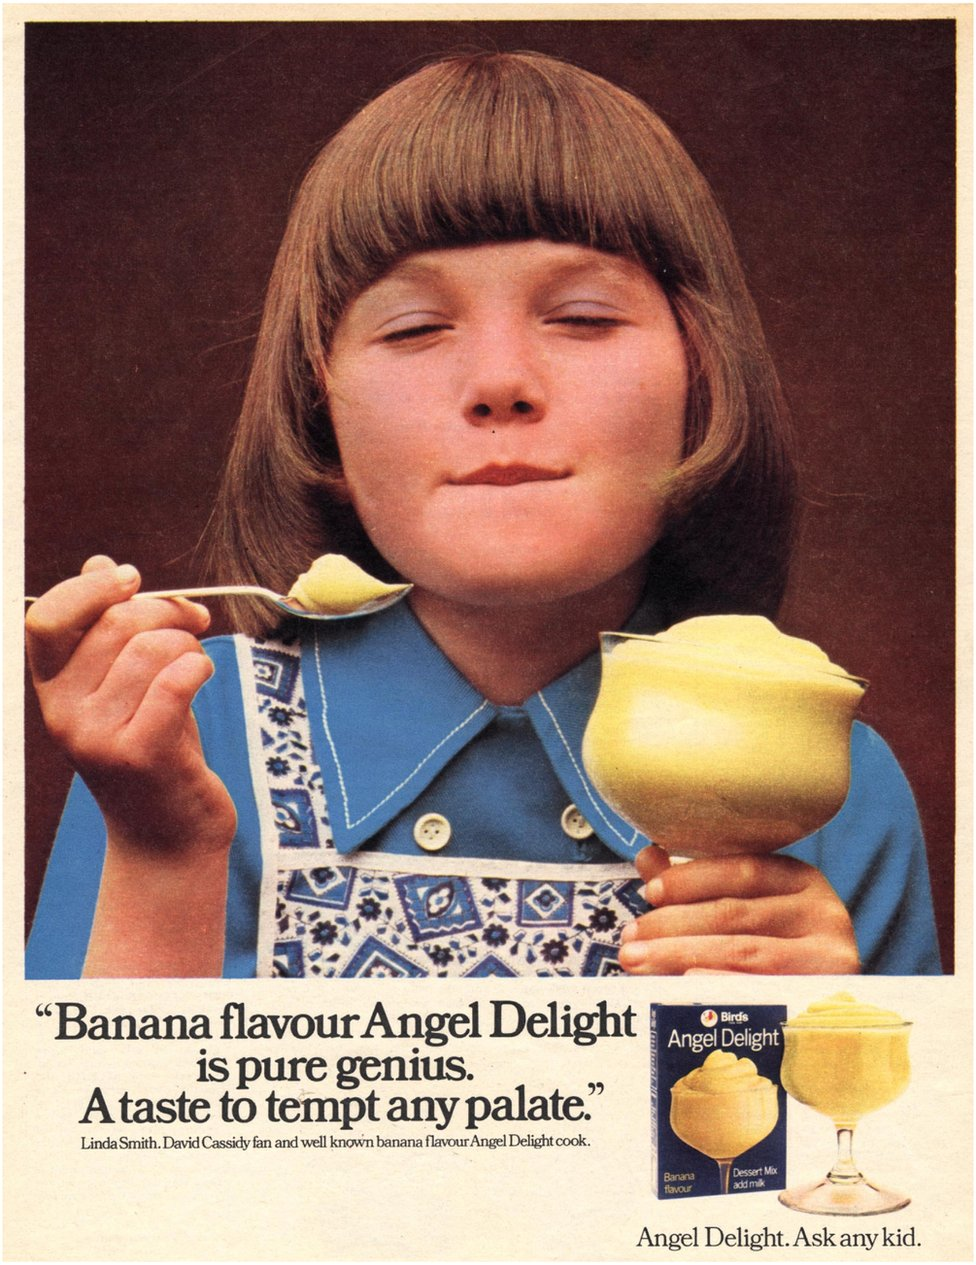 Powdered foods were popular in the 1970s